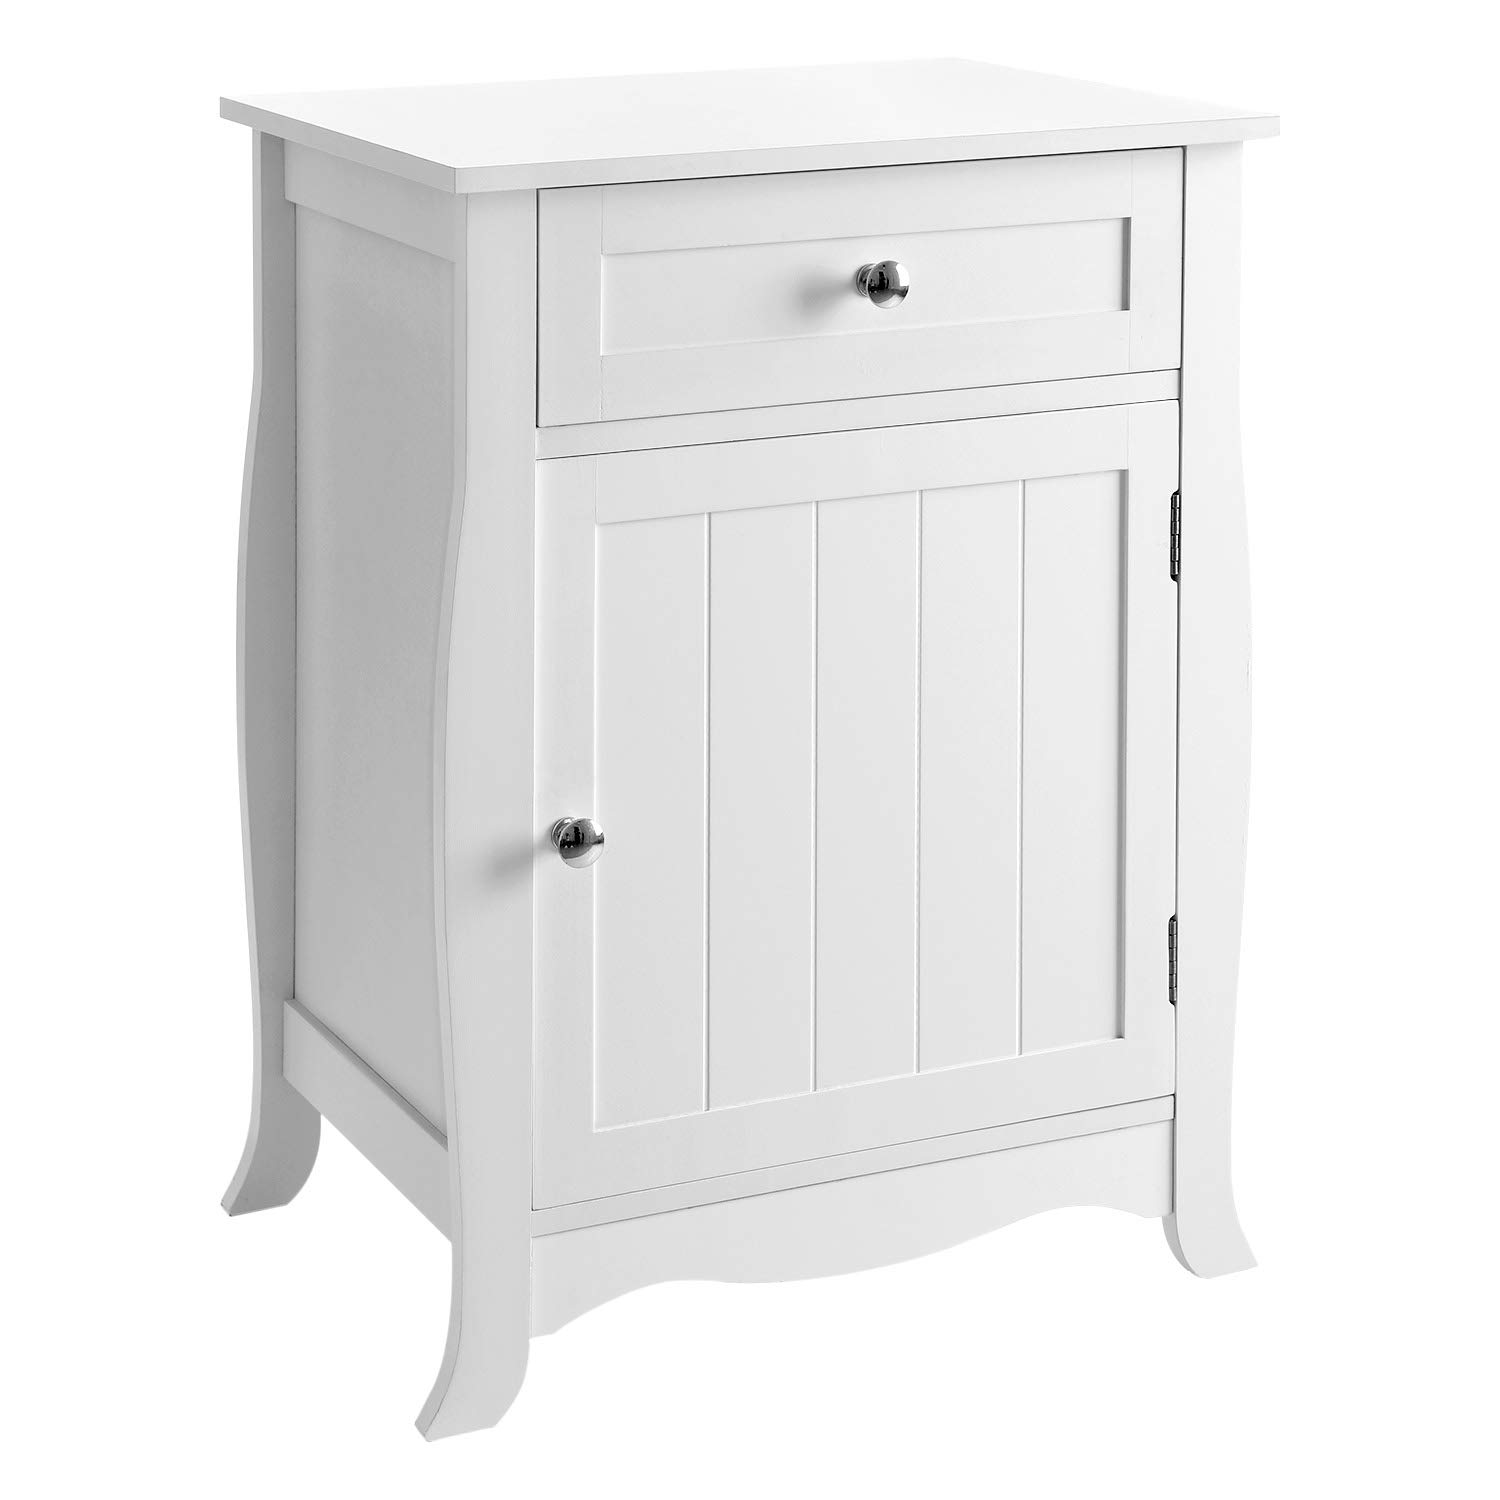 SONGMICS White Nightstand, End Table with Storage Cabinet and Drawer, Wooden Bedside Table, Large Capacity, Easy to Assemble ULET02WT by SONGMICS